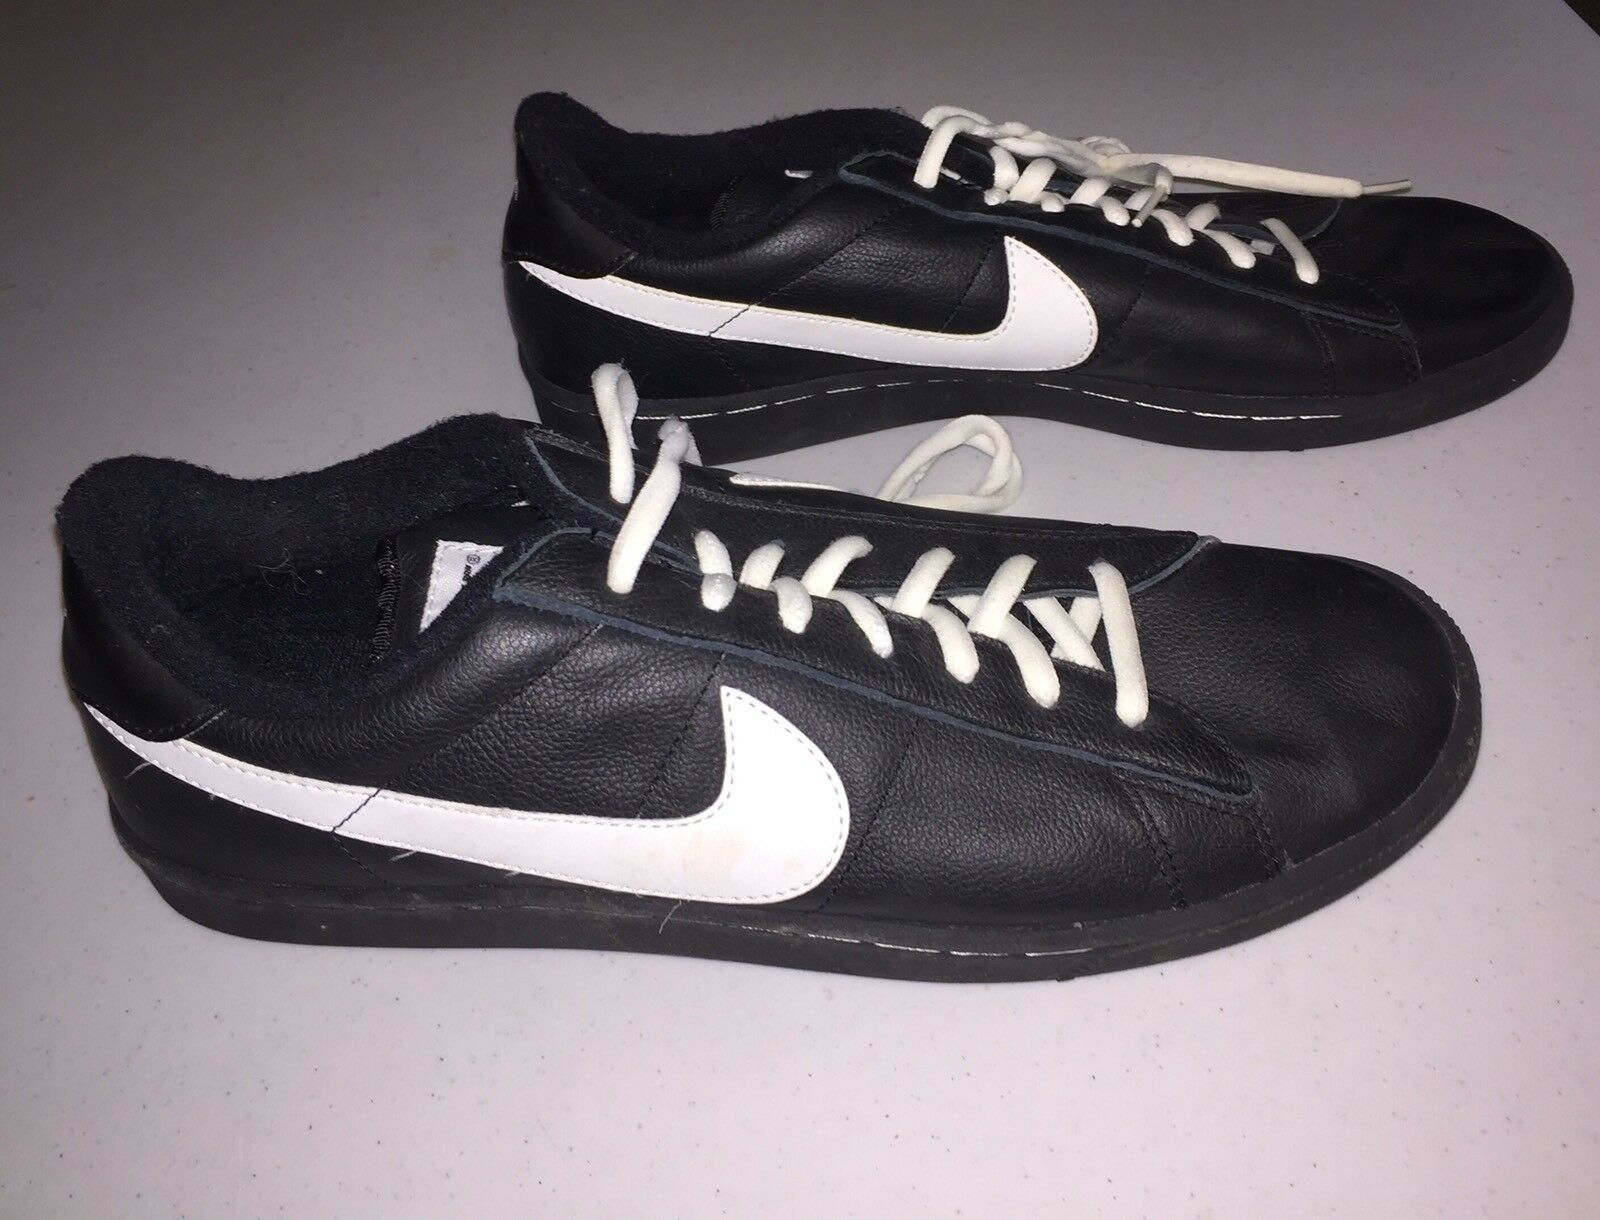 2005 Black Nike BRS Low Tops Shoes Comfortable best-selling model of the brand